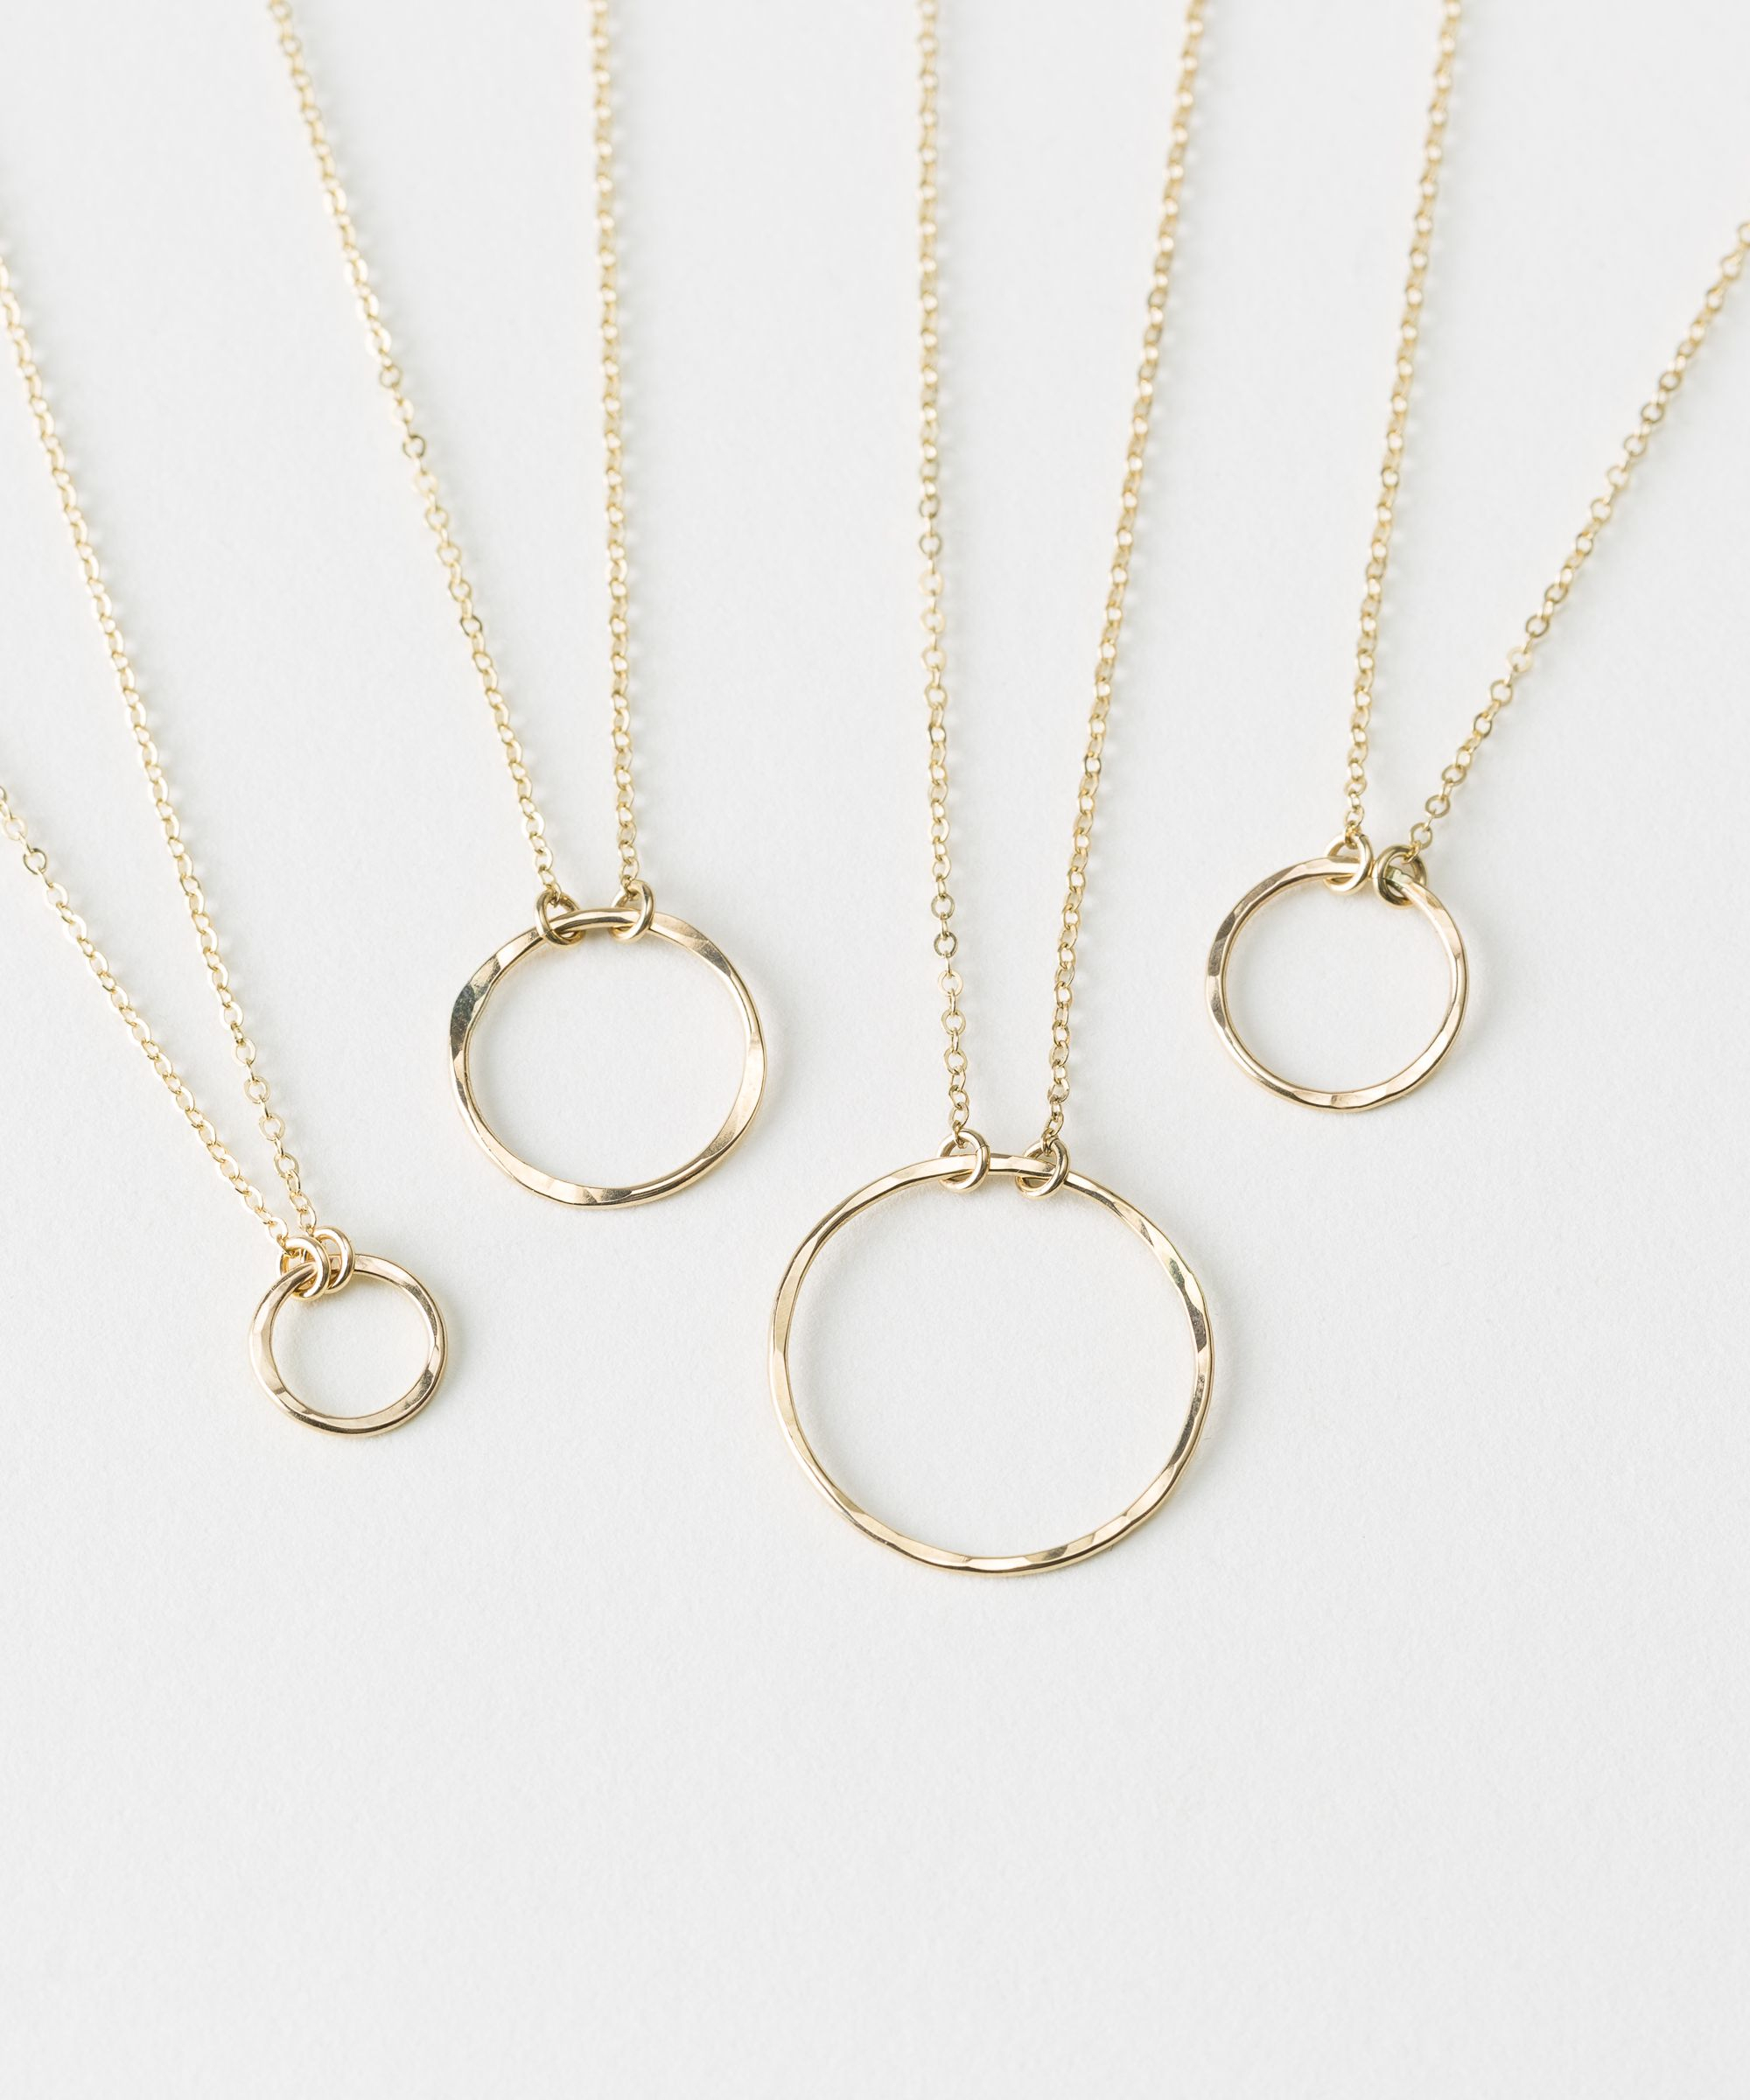 Selene Necklace In 2019 | Necklaces | Circle Necklace, Simple For Recent Circle Of Sparkle Necklaces (Gallery 10 of 25)